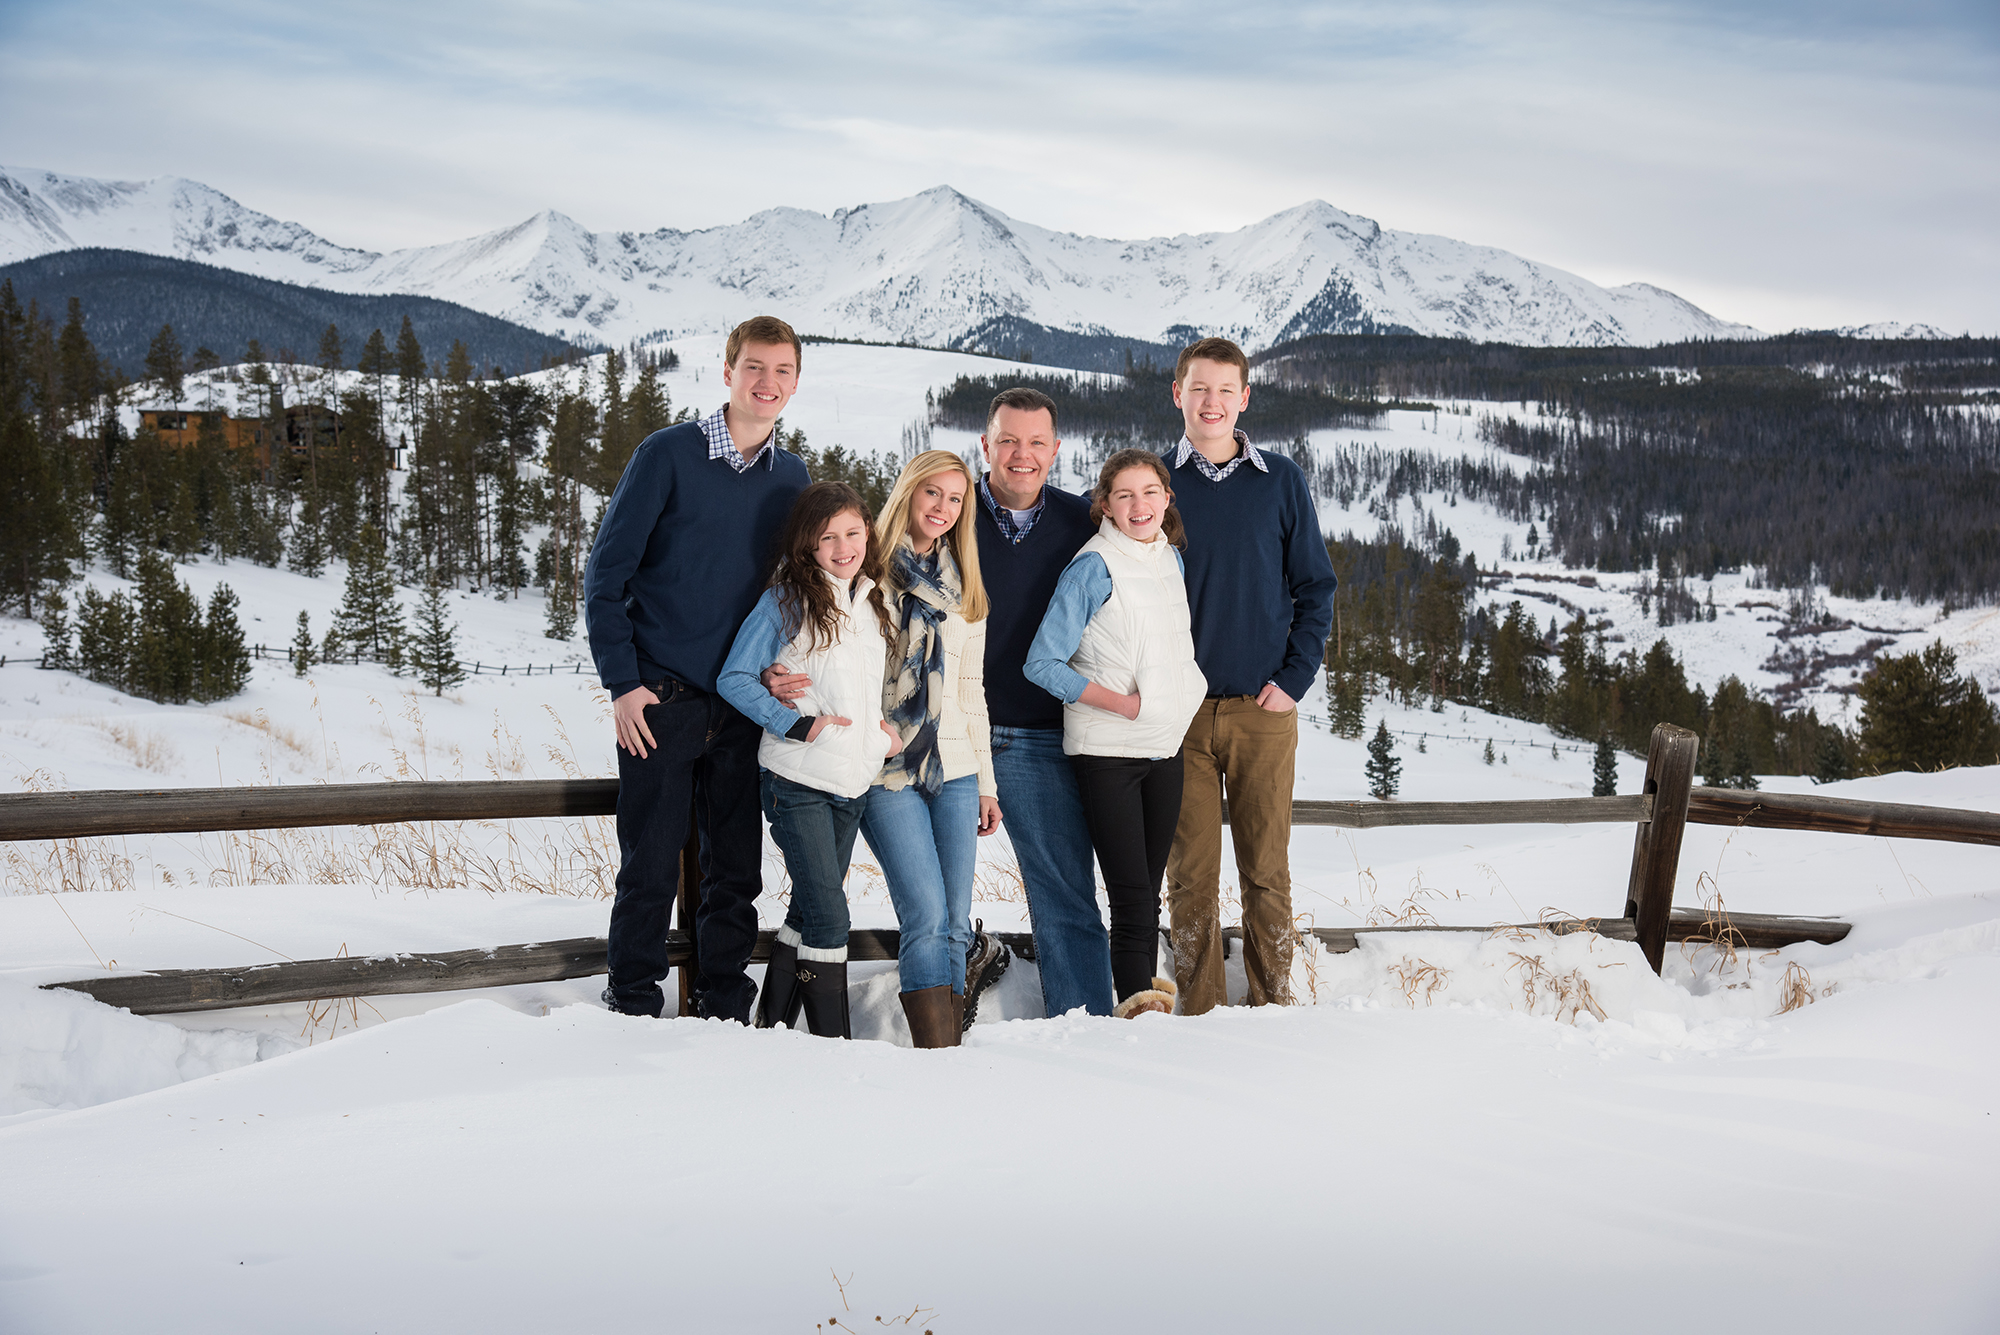 Family portrait in Breckenridge